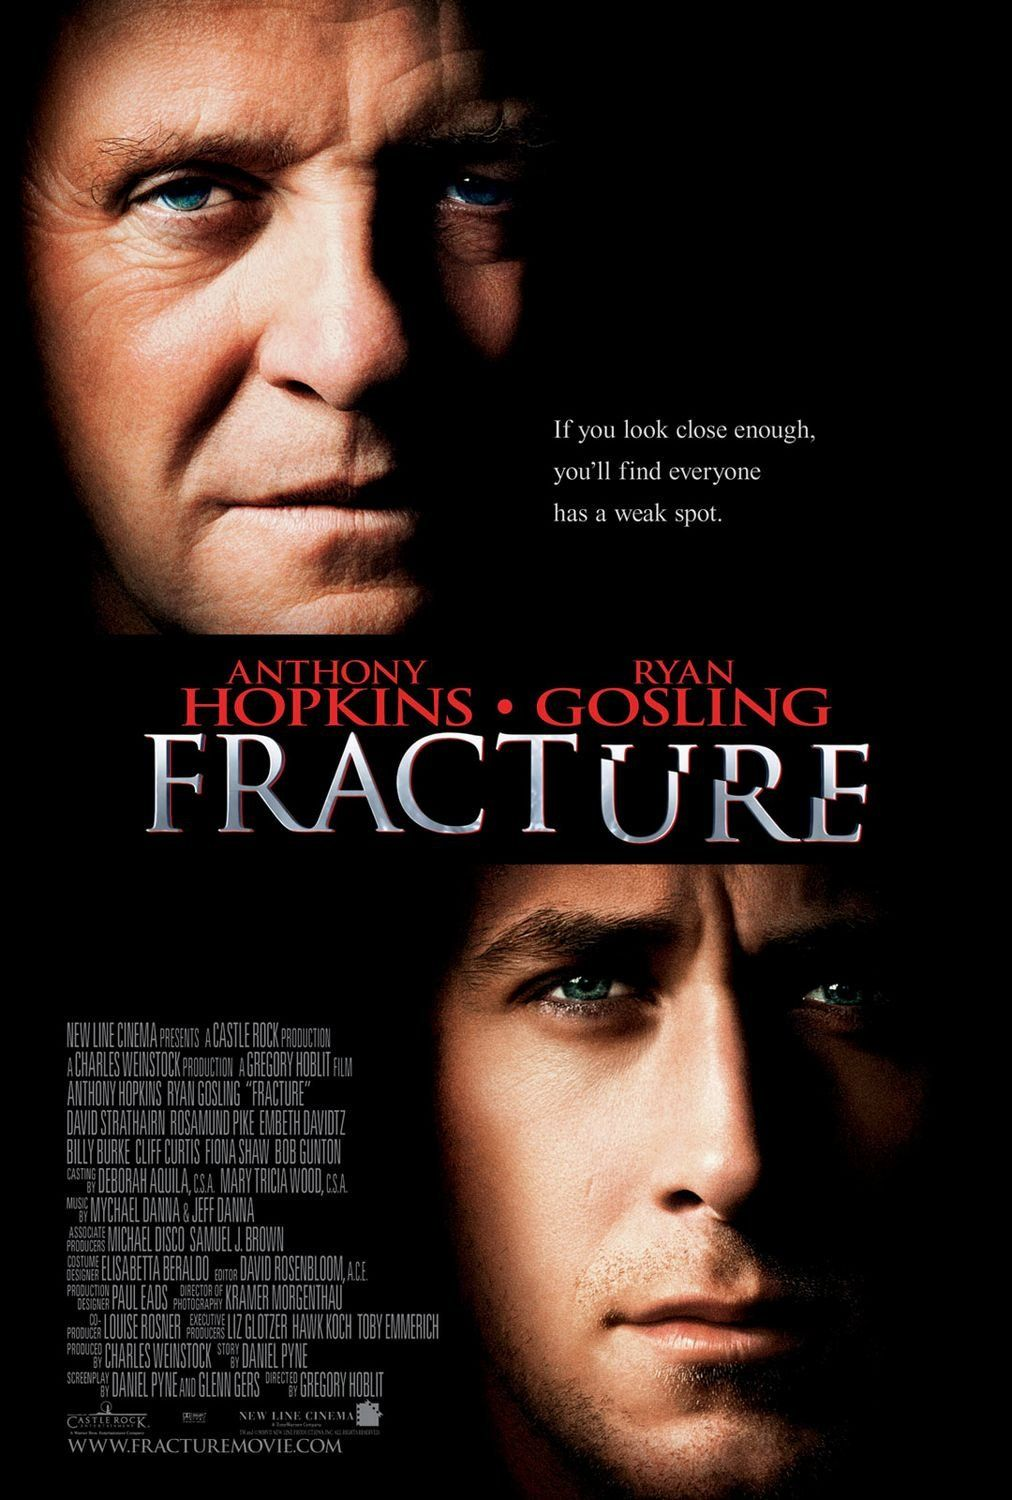 Fracture (2007) Movie Fracture movie, Streaming movies